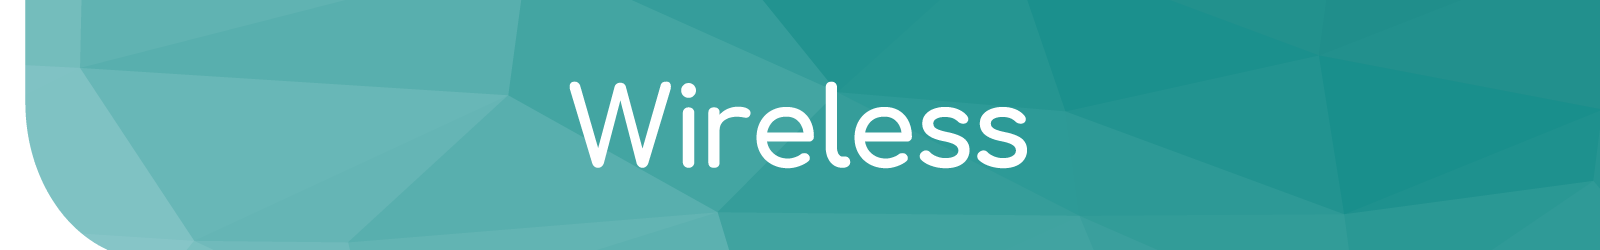 Wireless - Electronic Communication Services